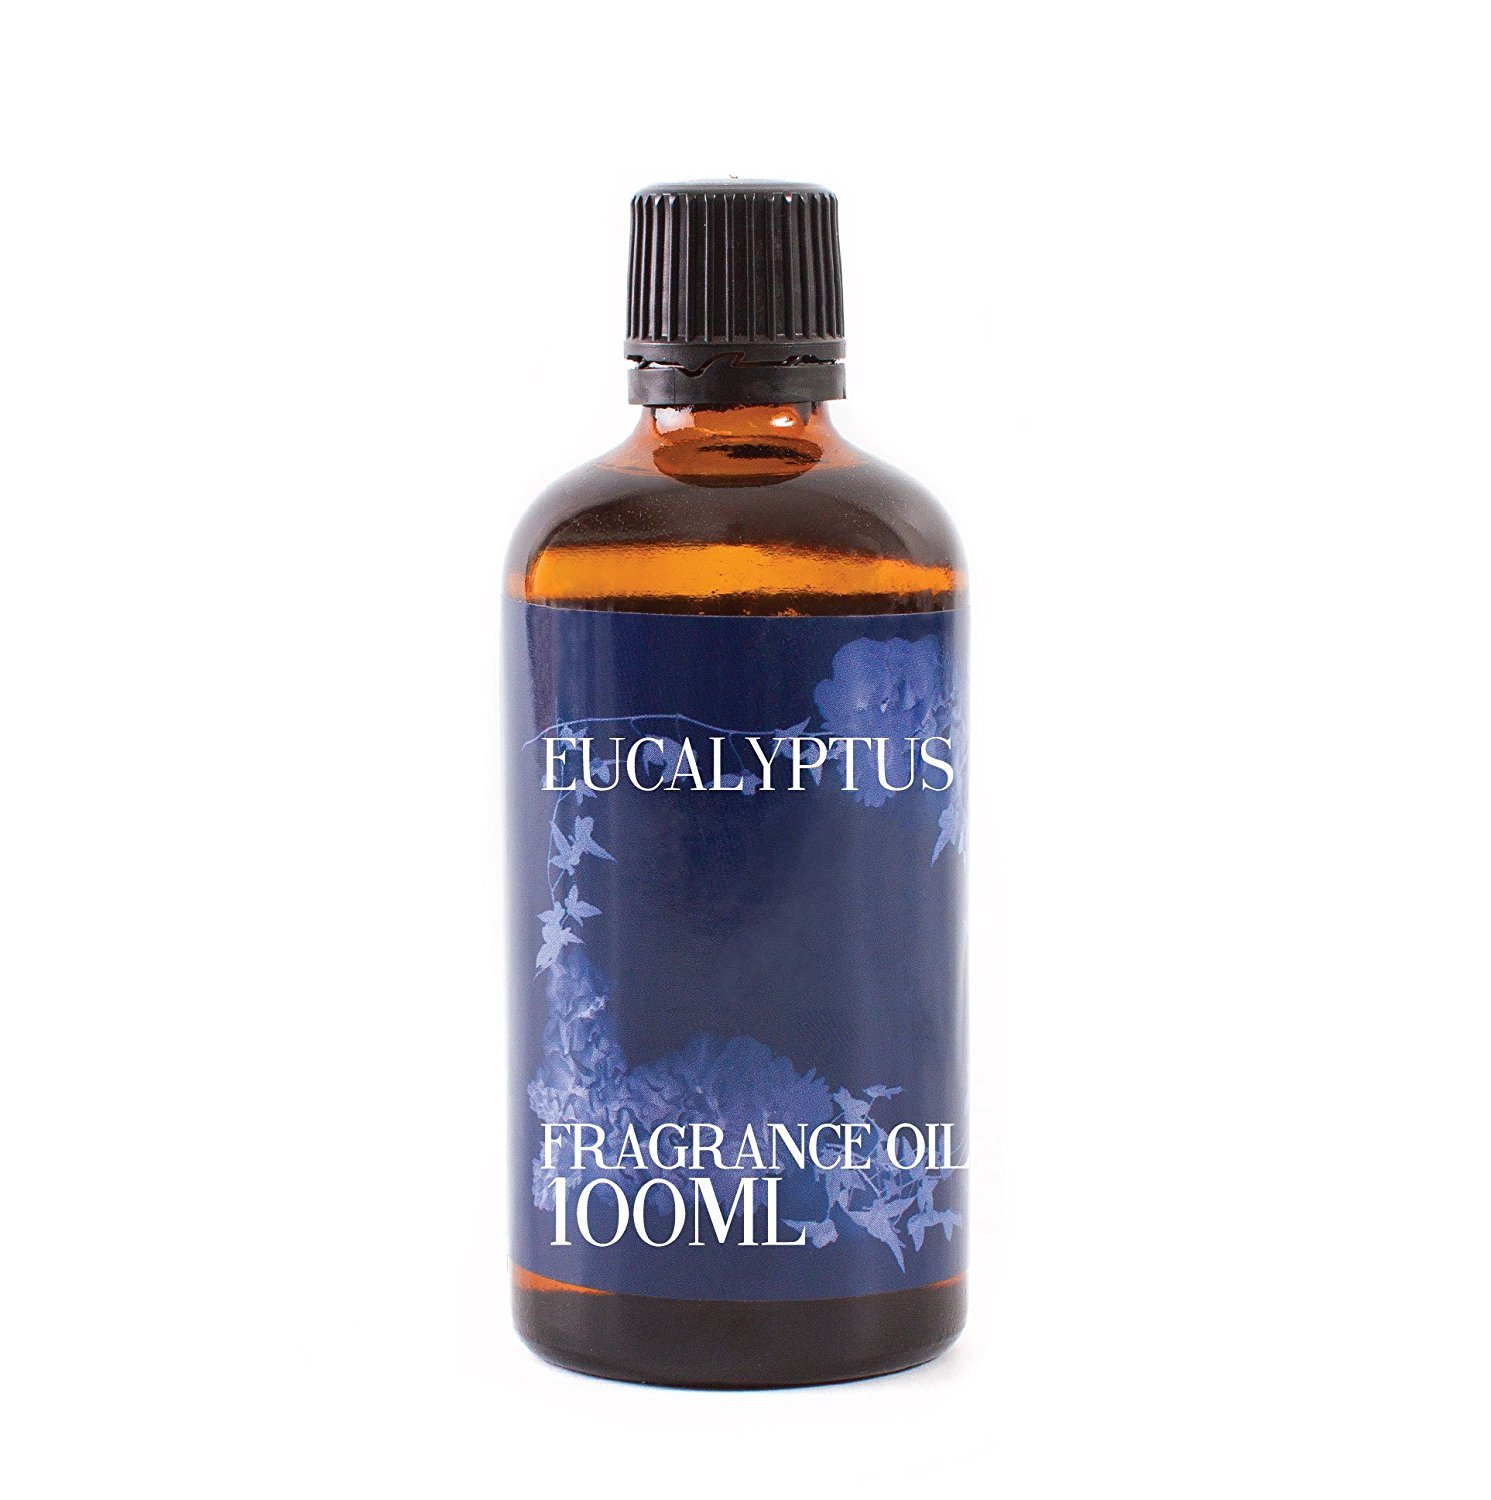 Mystic Moments | Eucalyptus Fragrance Oil - 100ml FOEUCA100